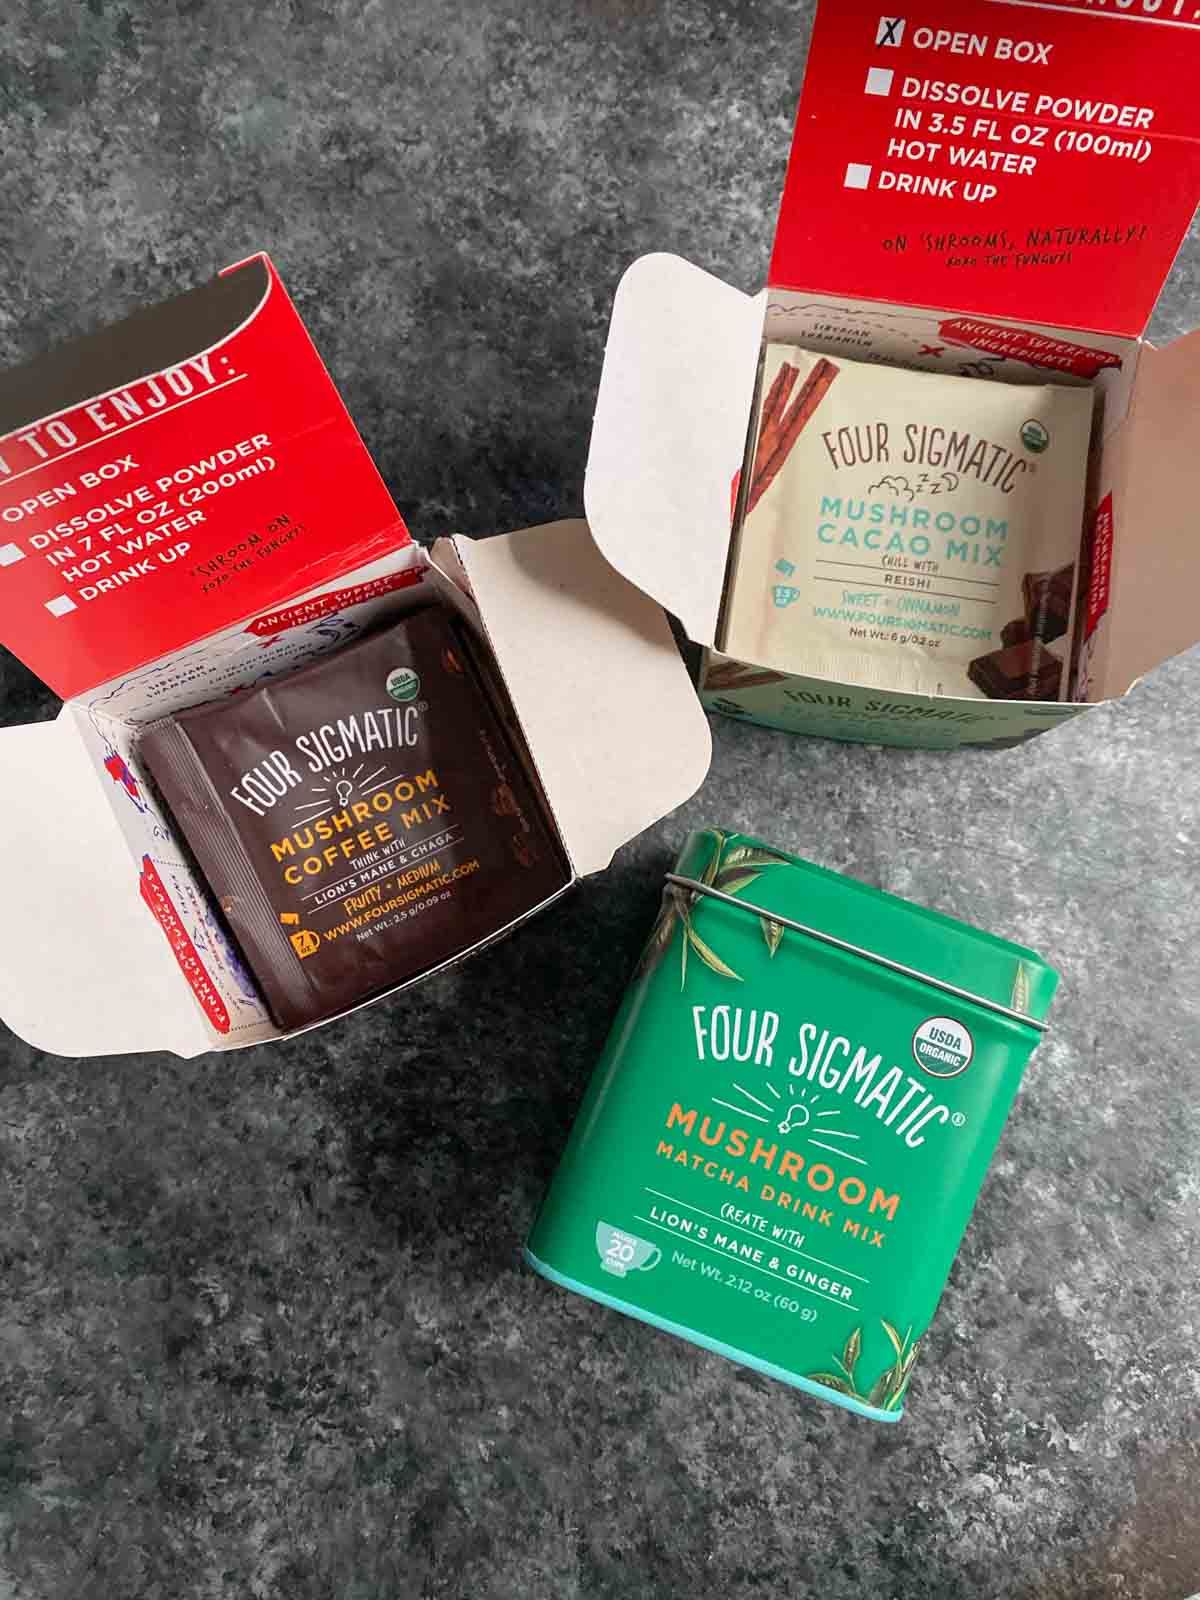 Four Sigmatic coffee and cacao packets with matcha